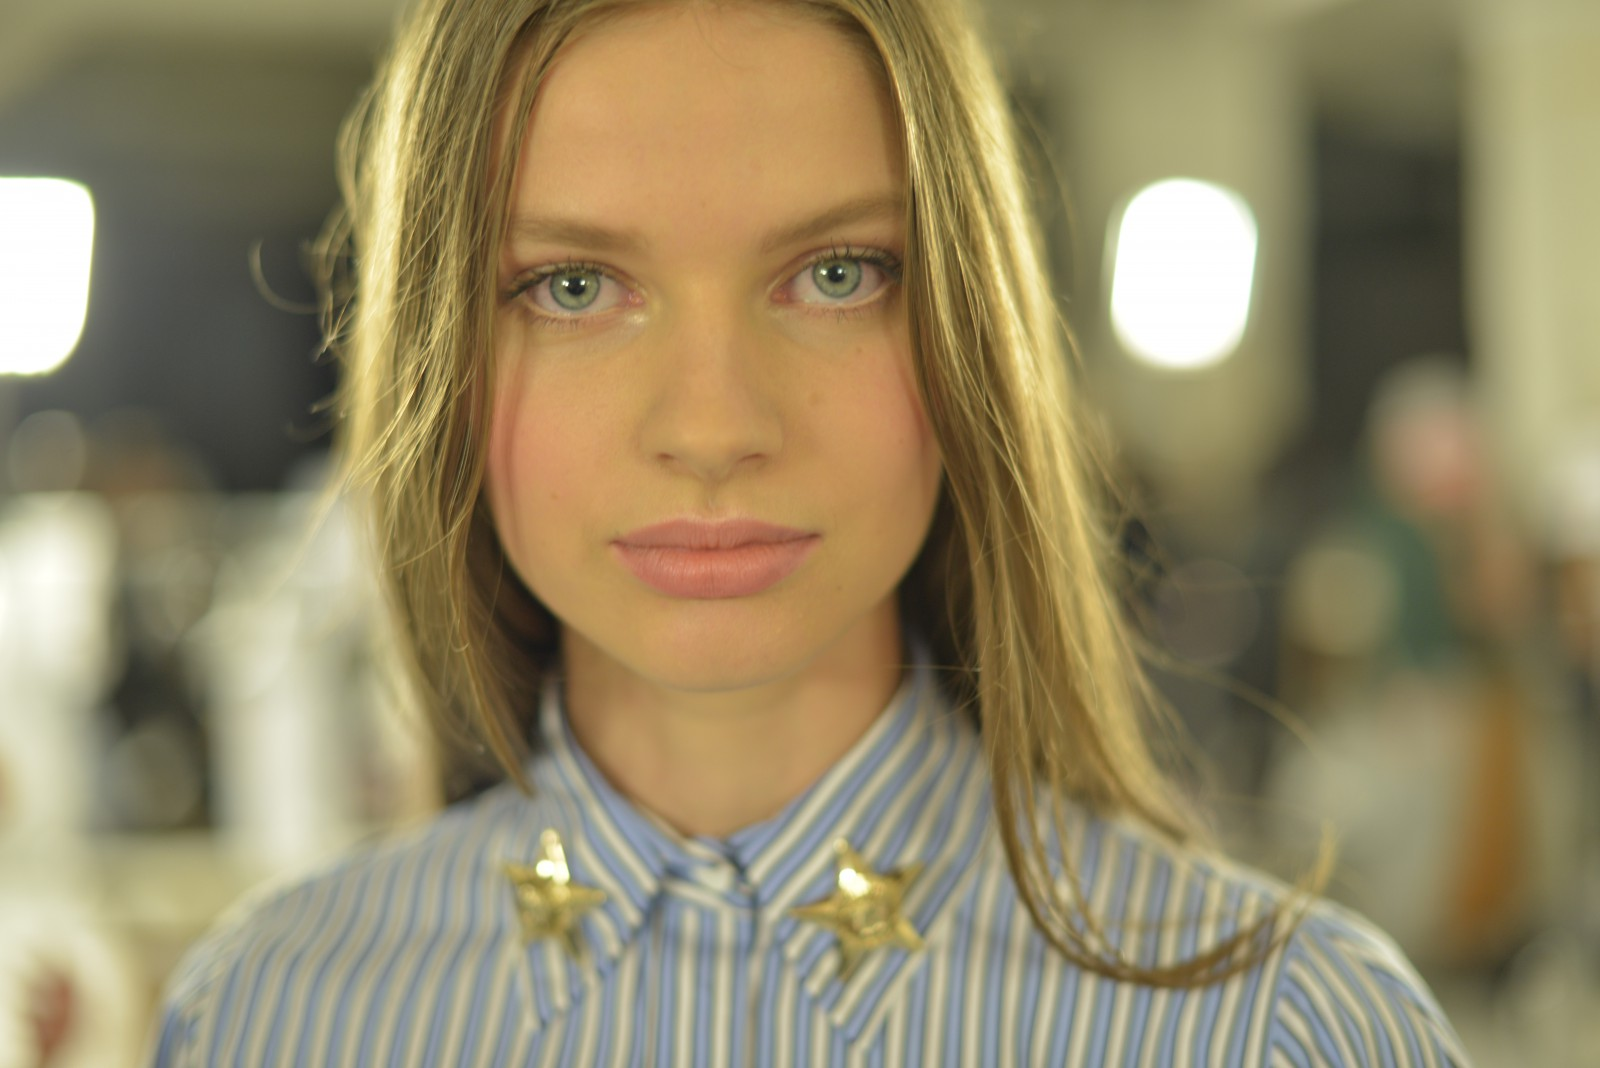 Milan van Eeten backstage at Versace's SS16 collection